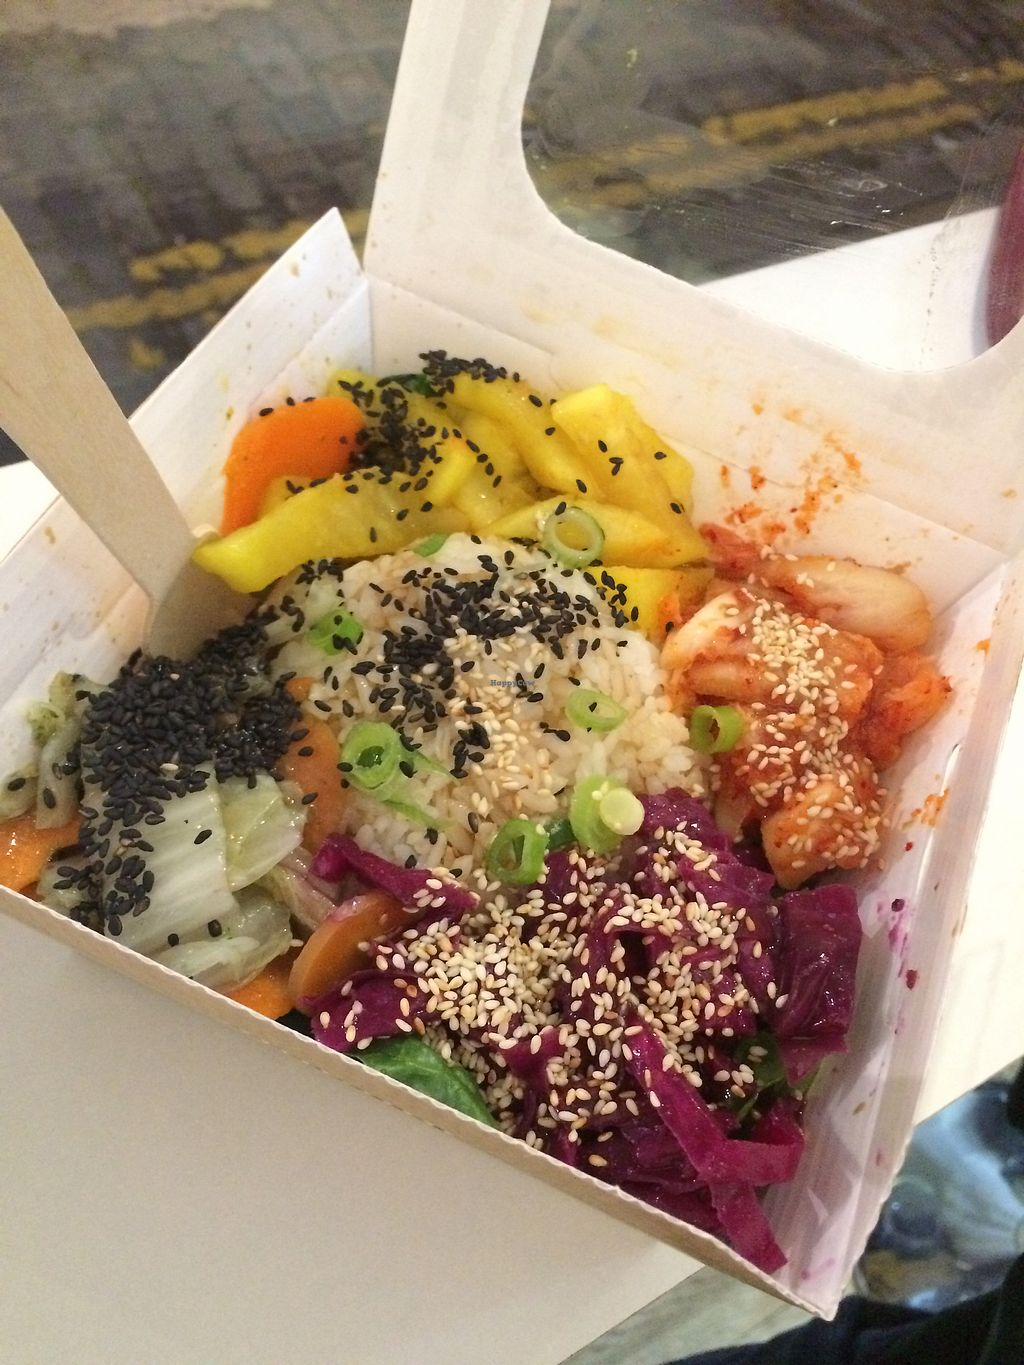 """Photo of Vegan Yes - Whitechapel  by <a href=""""/members/profile/tendaystogo"""">tendaystogo</a> <br/>Bibimbap <br/> September 28, 2017  - <a href='/contact/abuse/image/98828/309438'>Report</a>"""